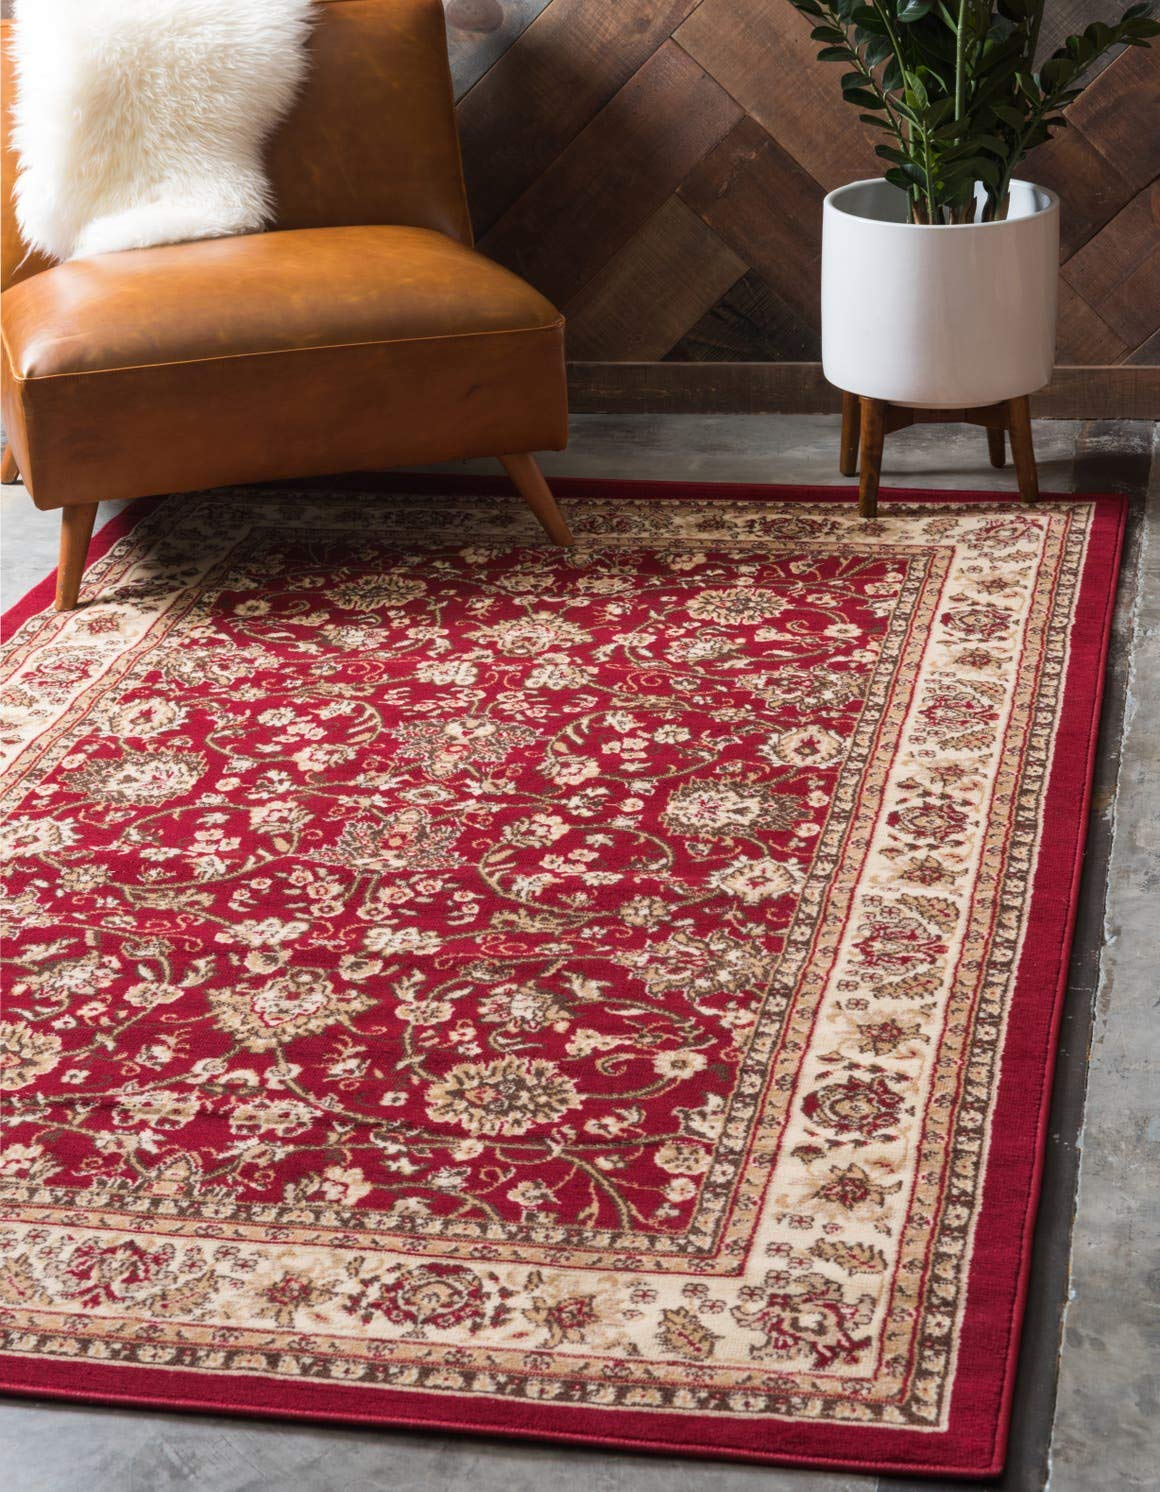 Unique Loom Kashan Collection Traditional Floral Overall Pattern with Border Burgundy Area Rug 5 0 x 8 0